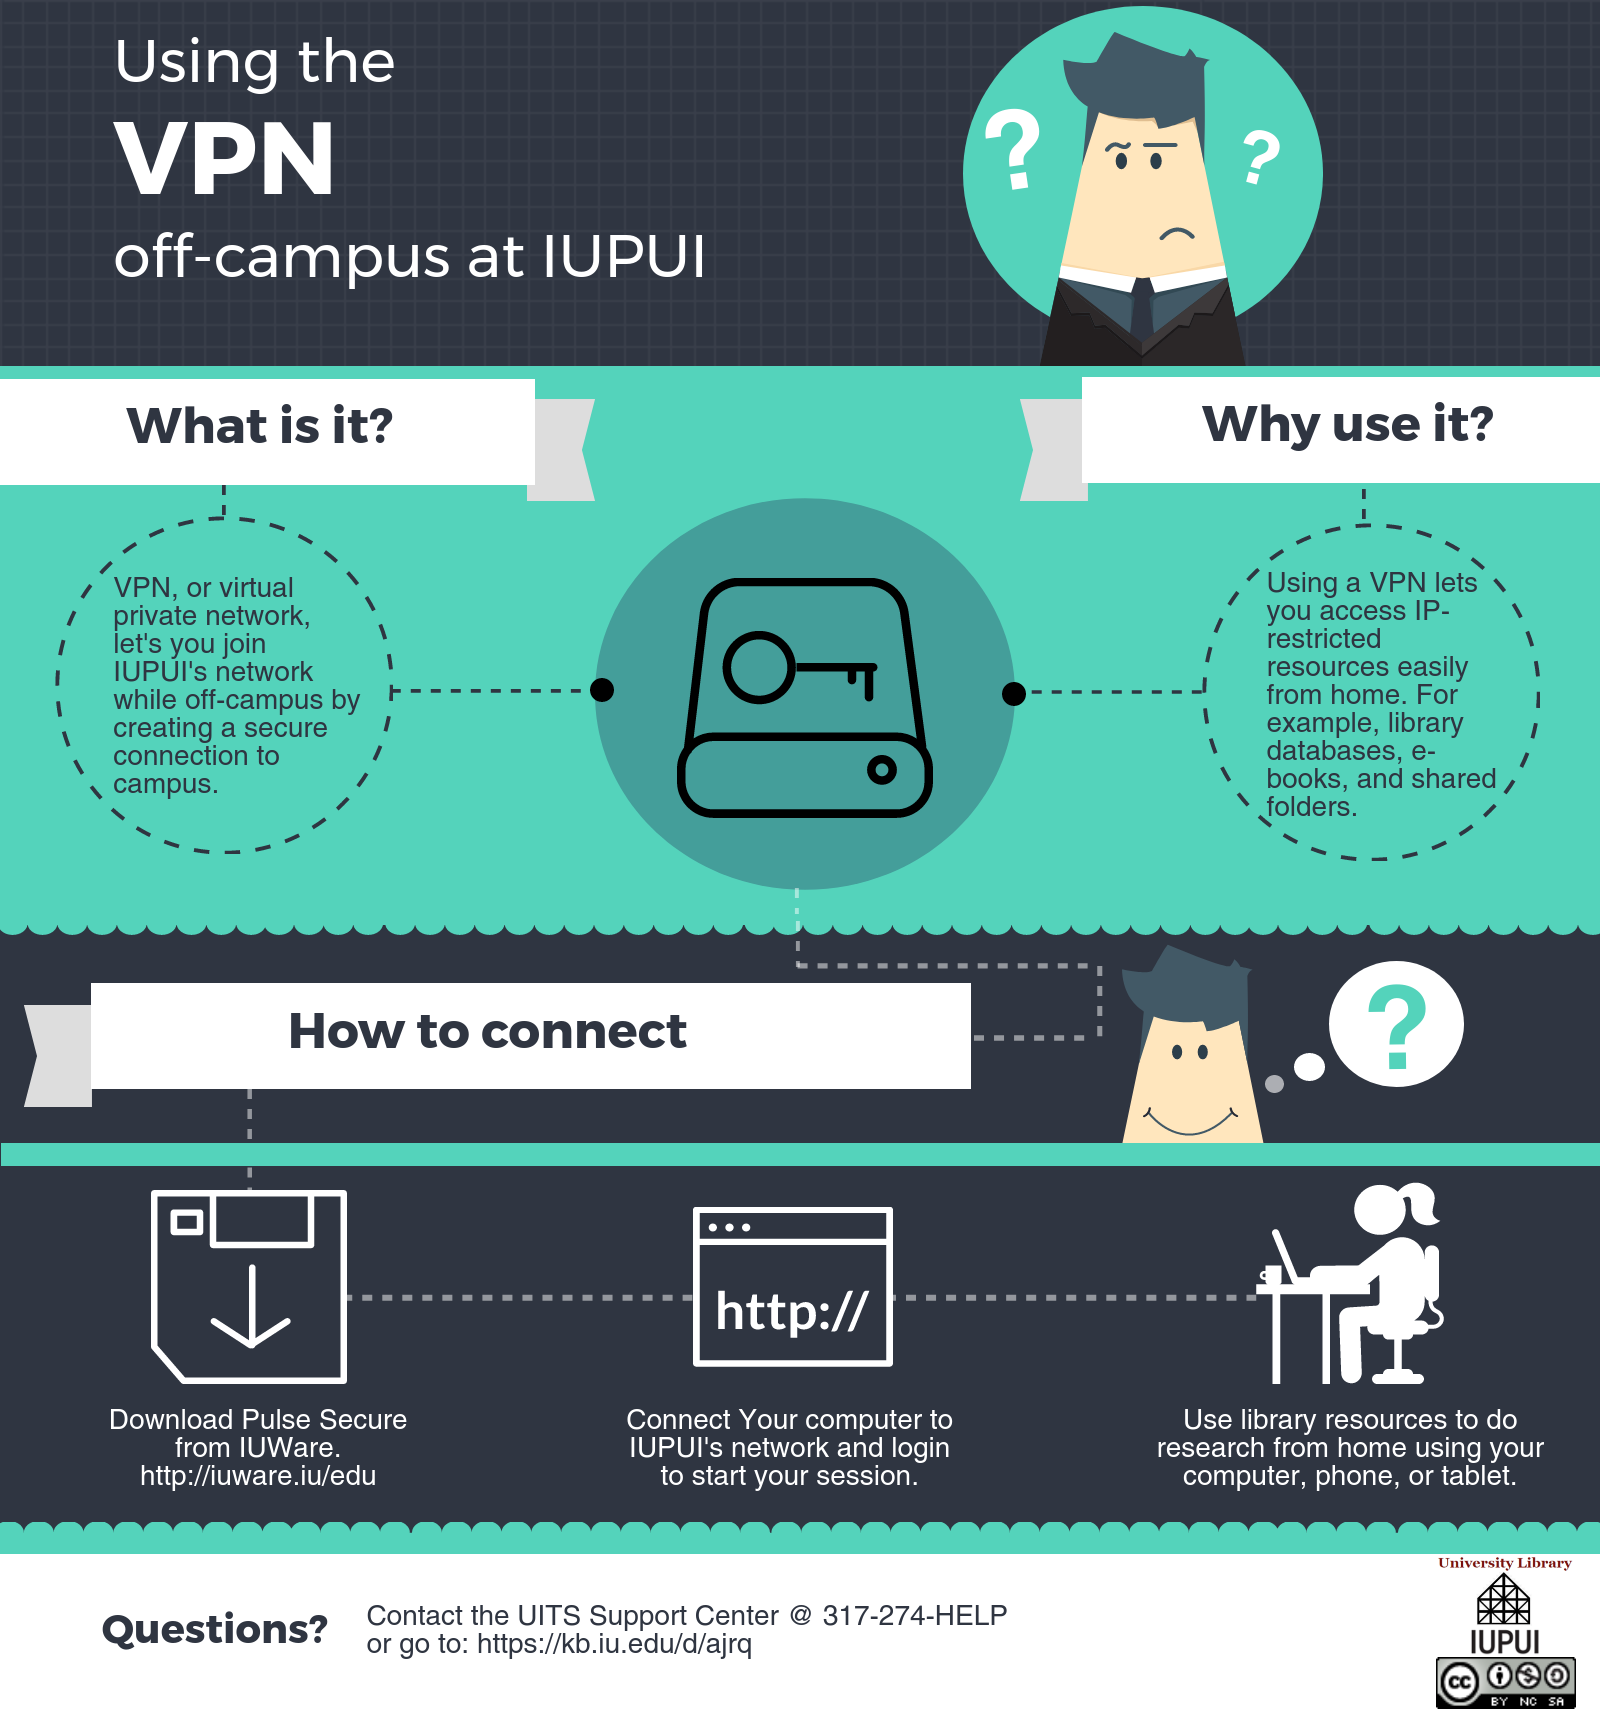 Using the VPN off-campus at IUPUI